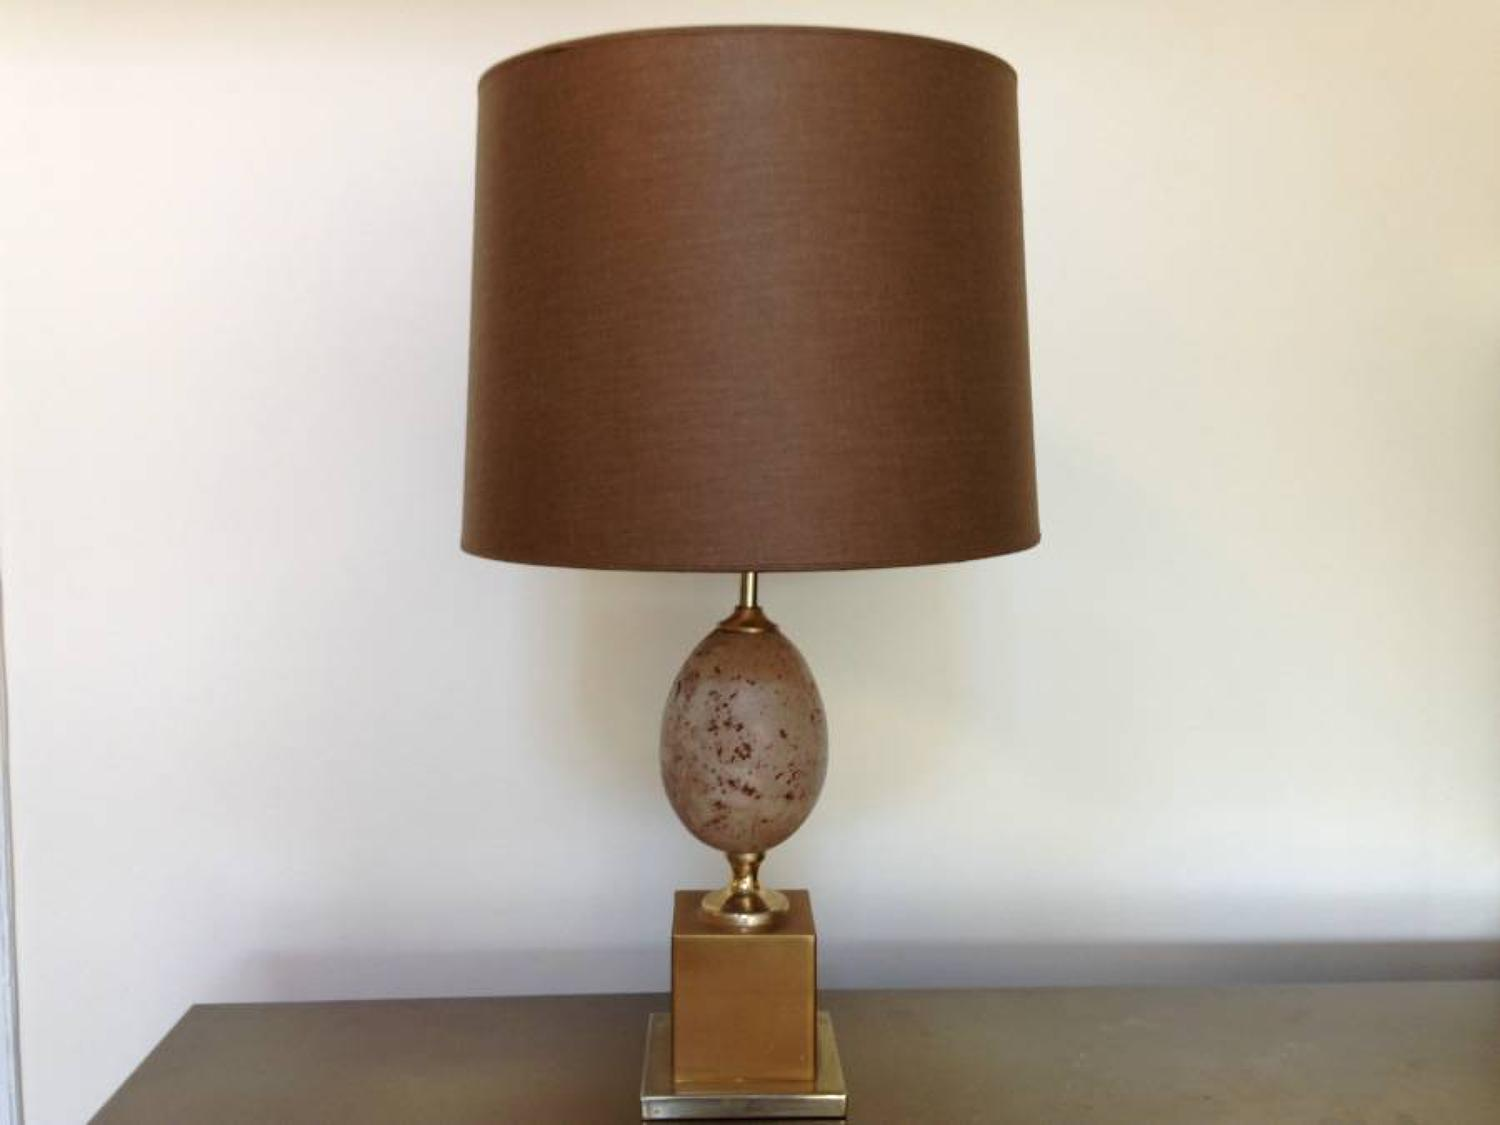 Travertine egg and metal table lamp